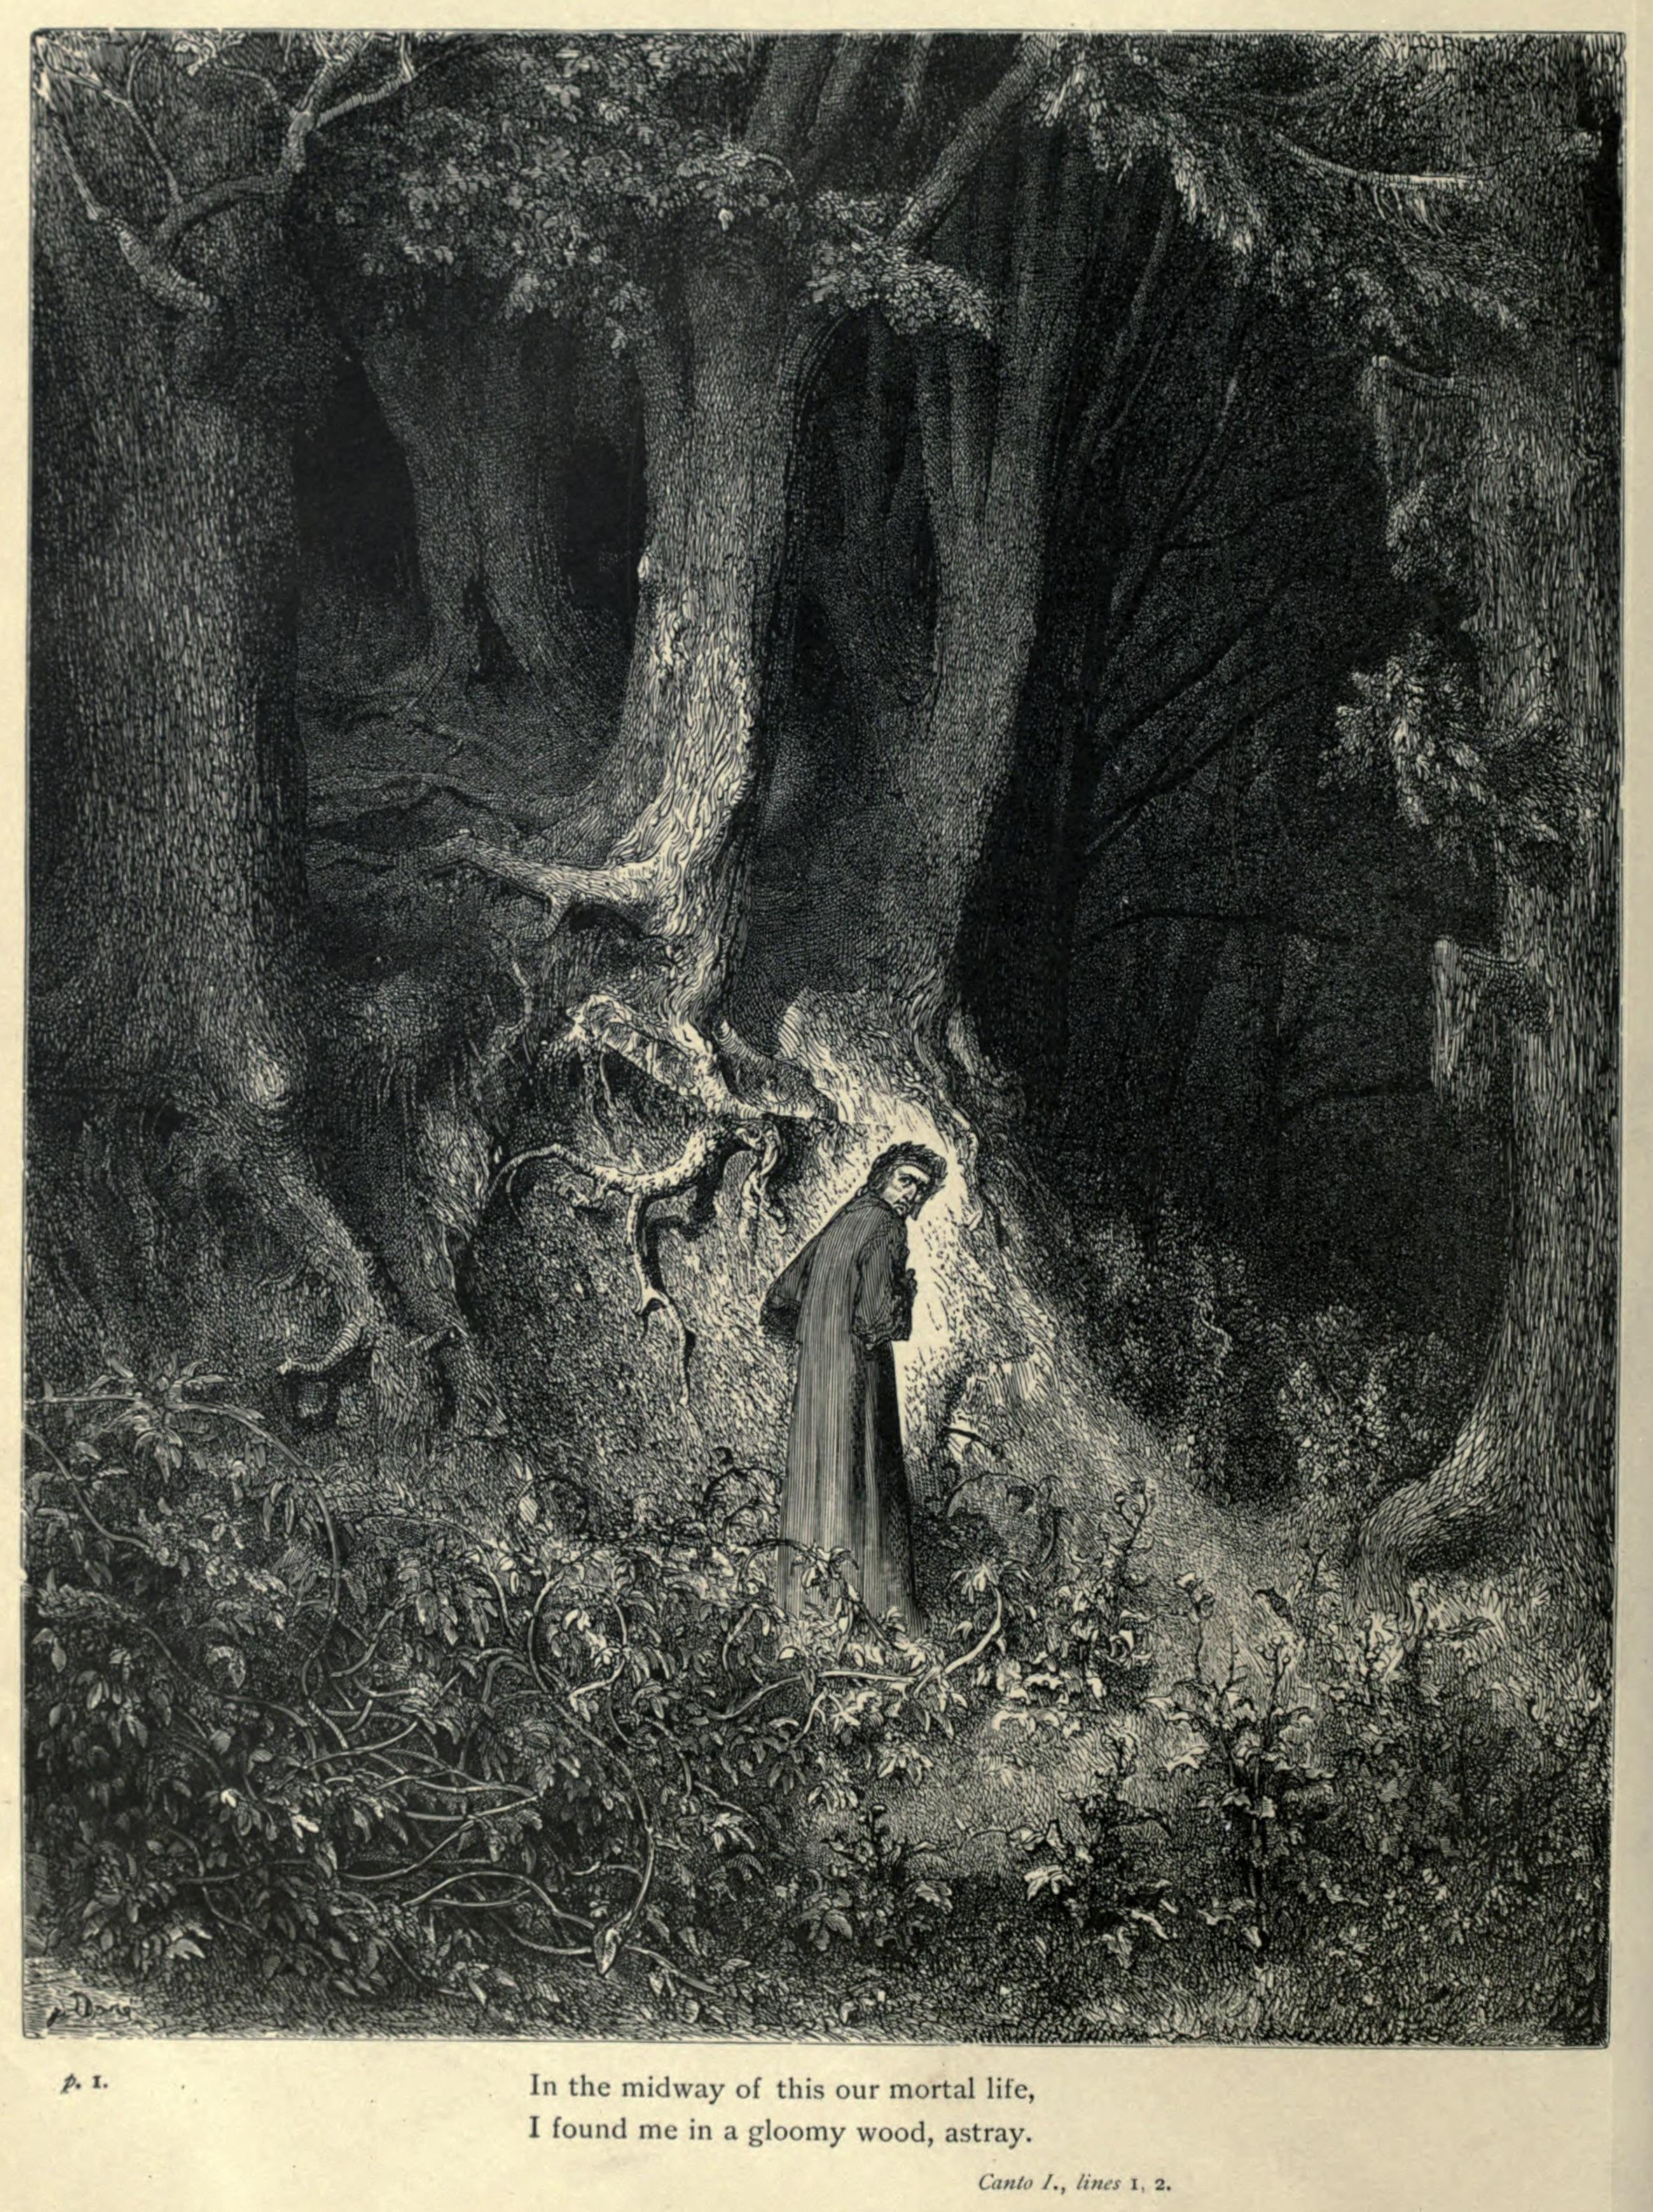 http://upload.wikimedia.org/wikipedia/commons/d/dd/Gustave_Dore_Inferno1.jpg